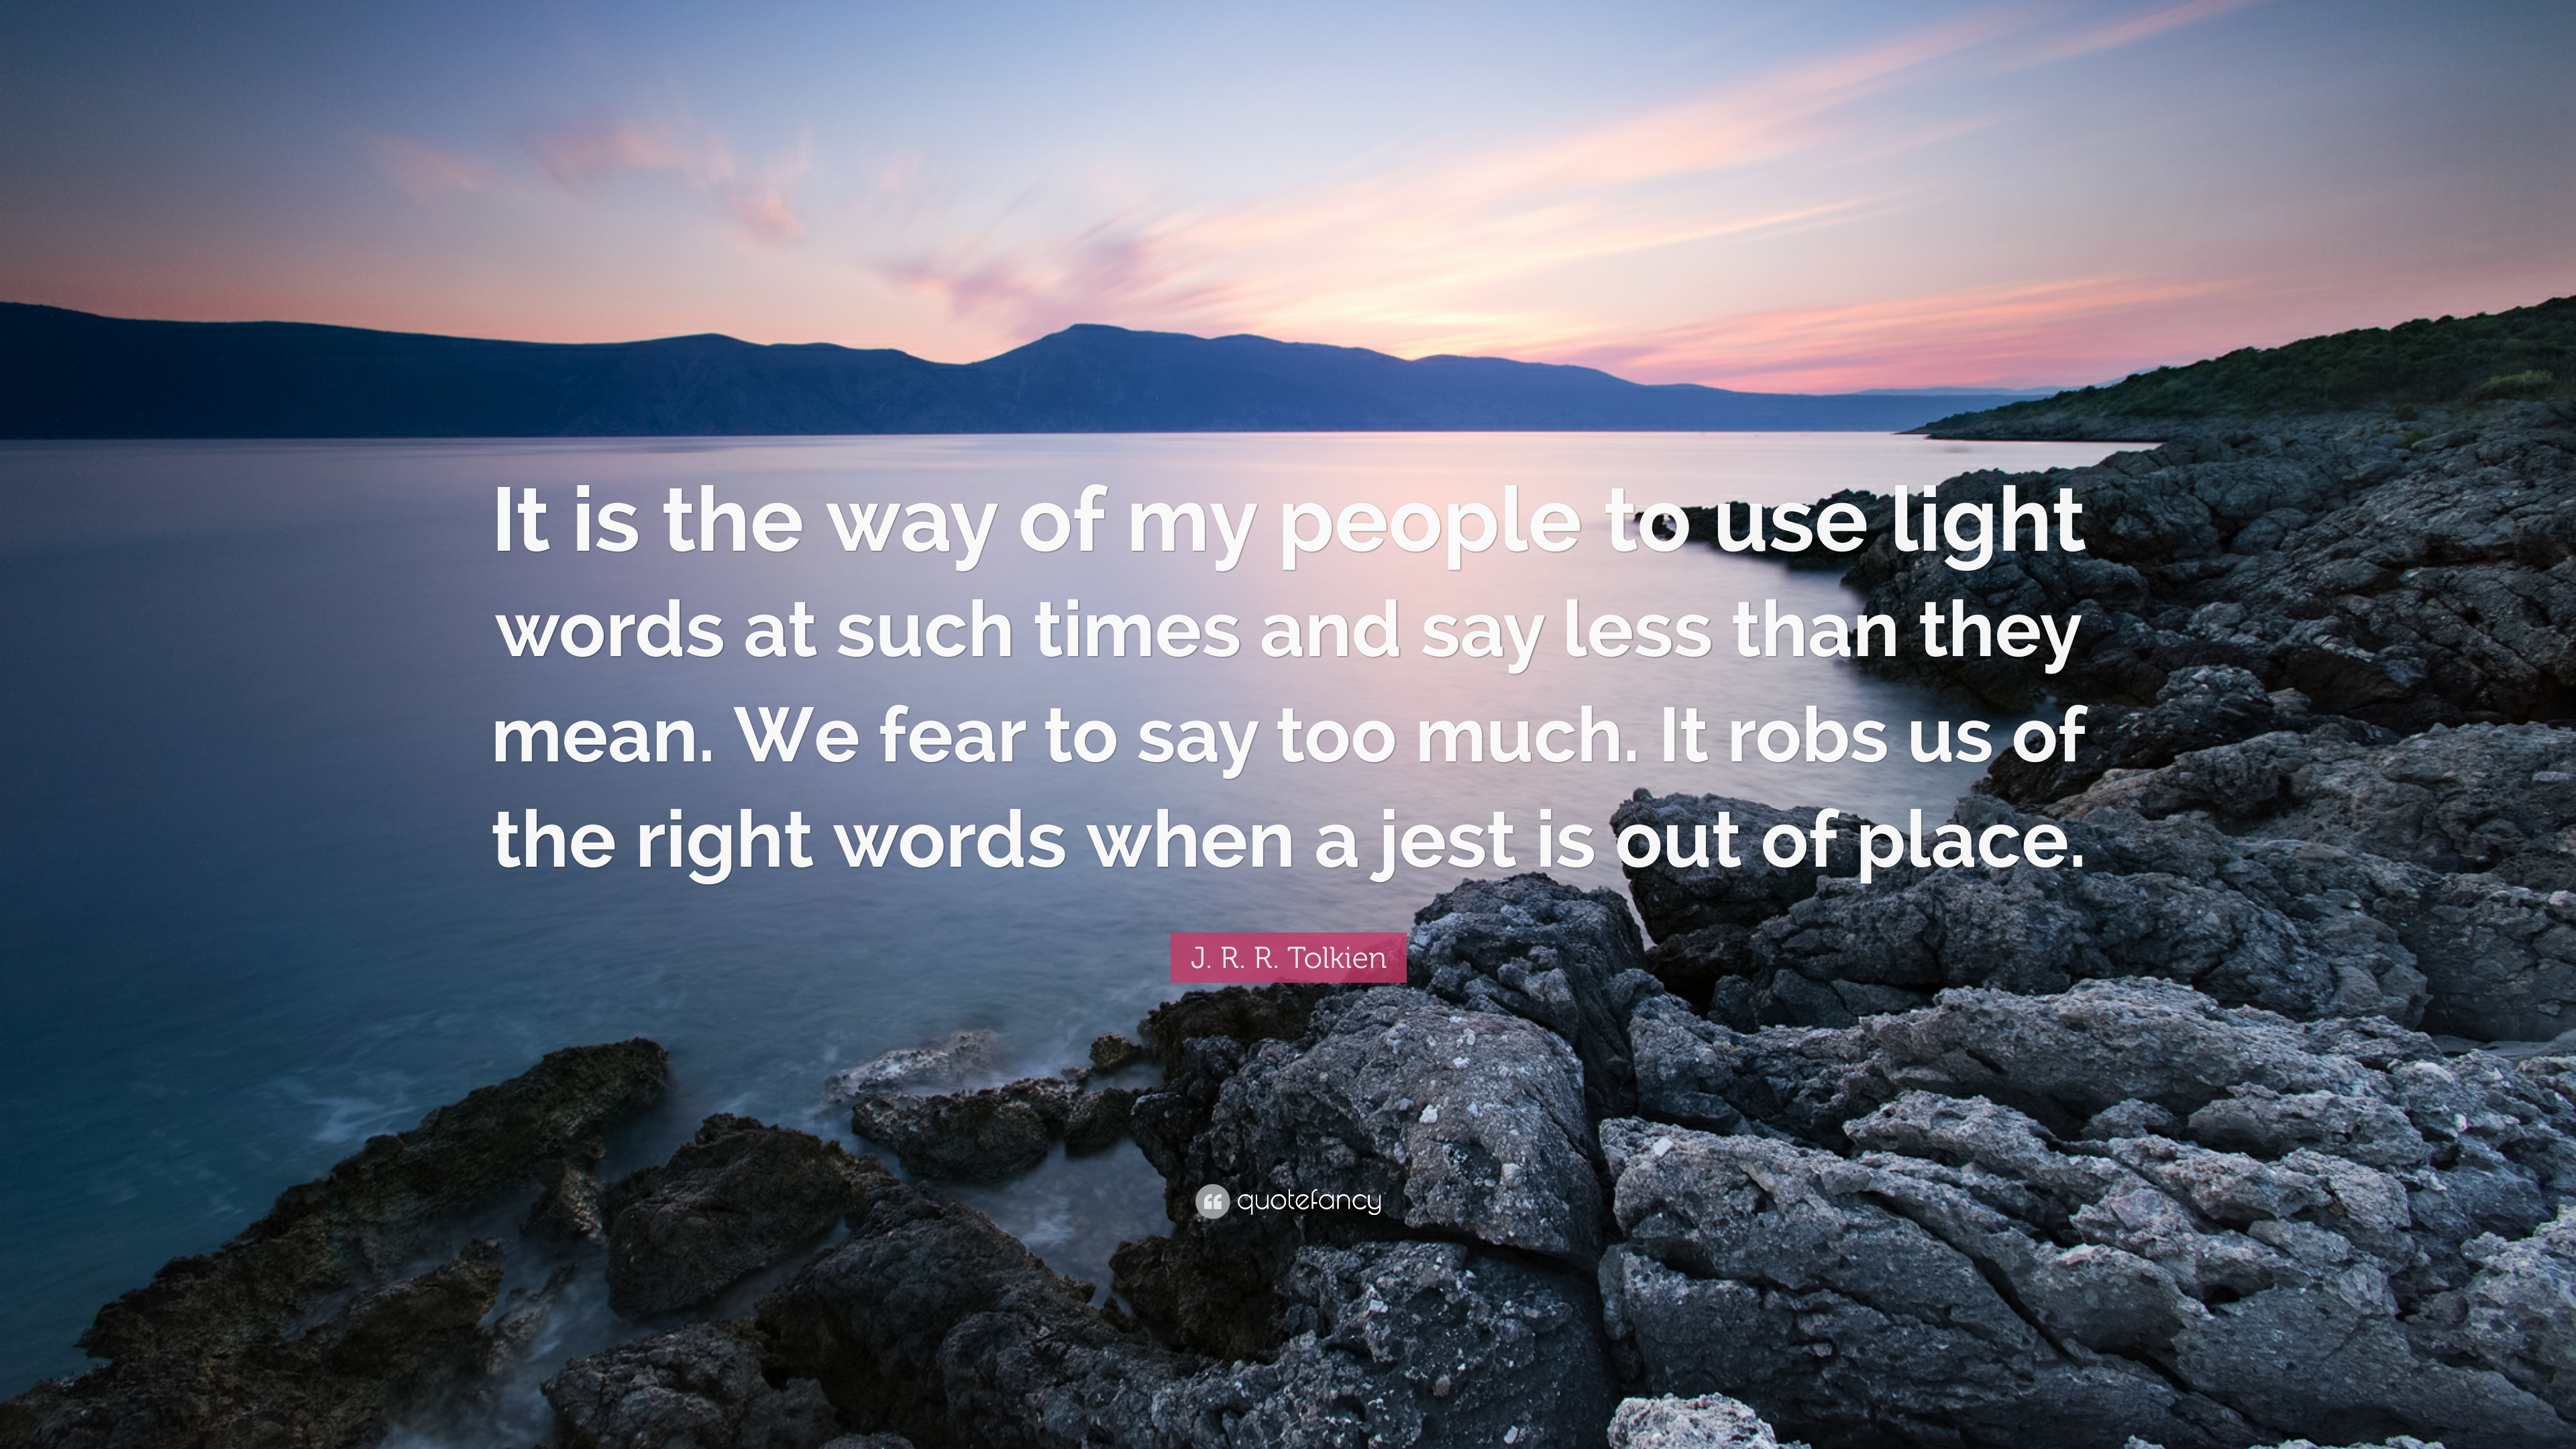 j r r tolkien quote it is the way of my people to use light